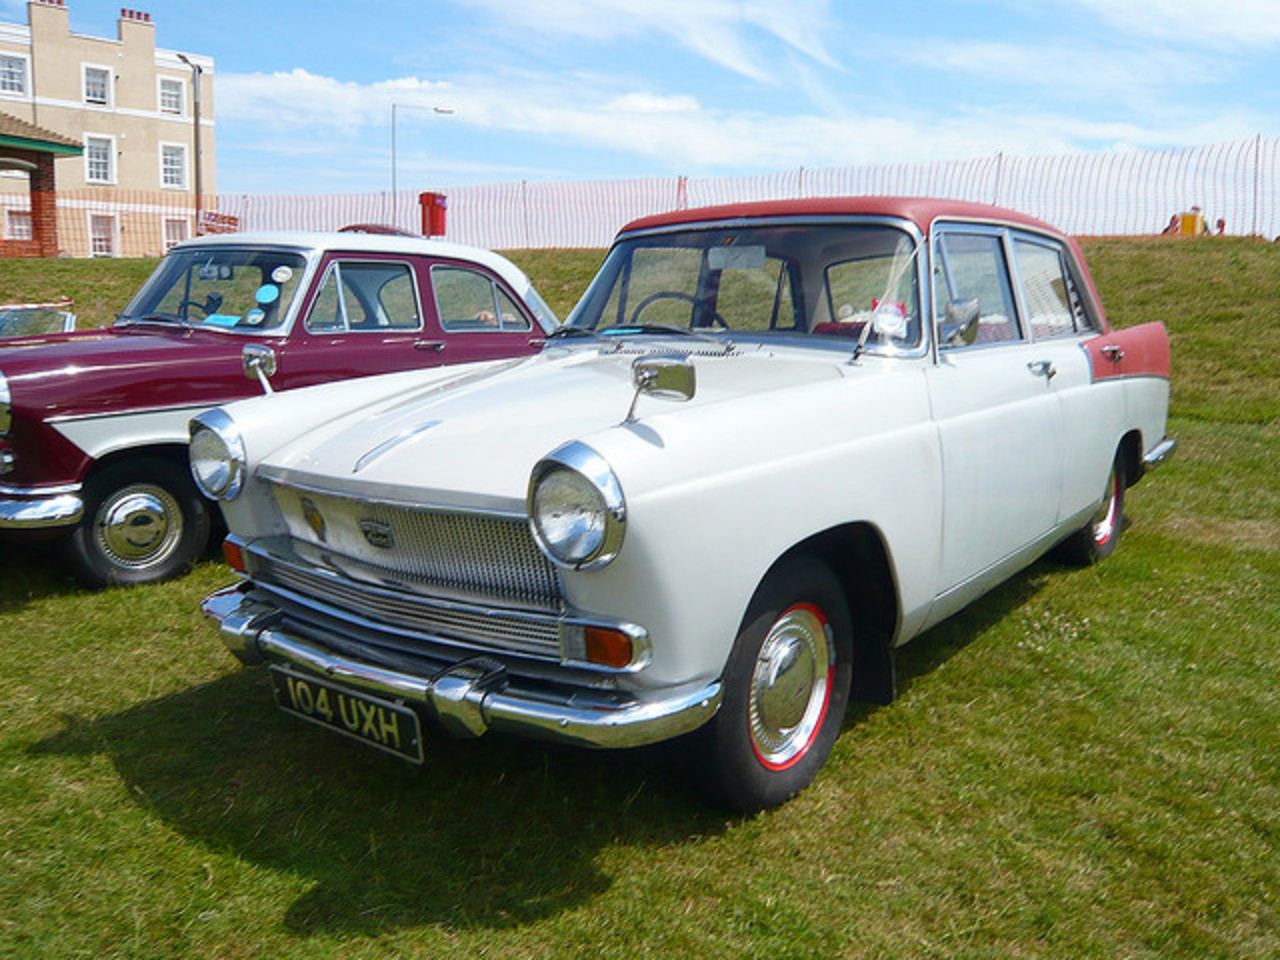 1960 Austin A55 Cambridge Farina | Flickr - Photo Sharing!